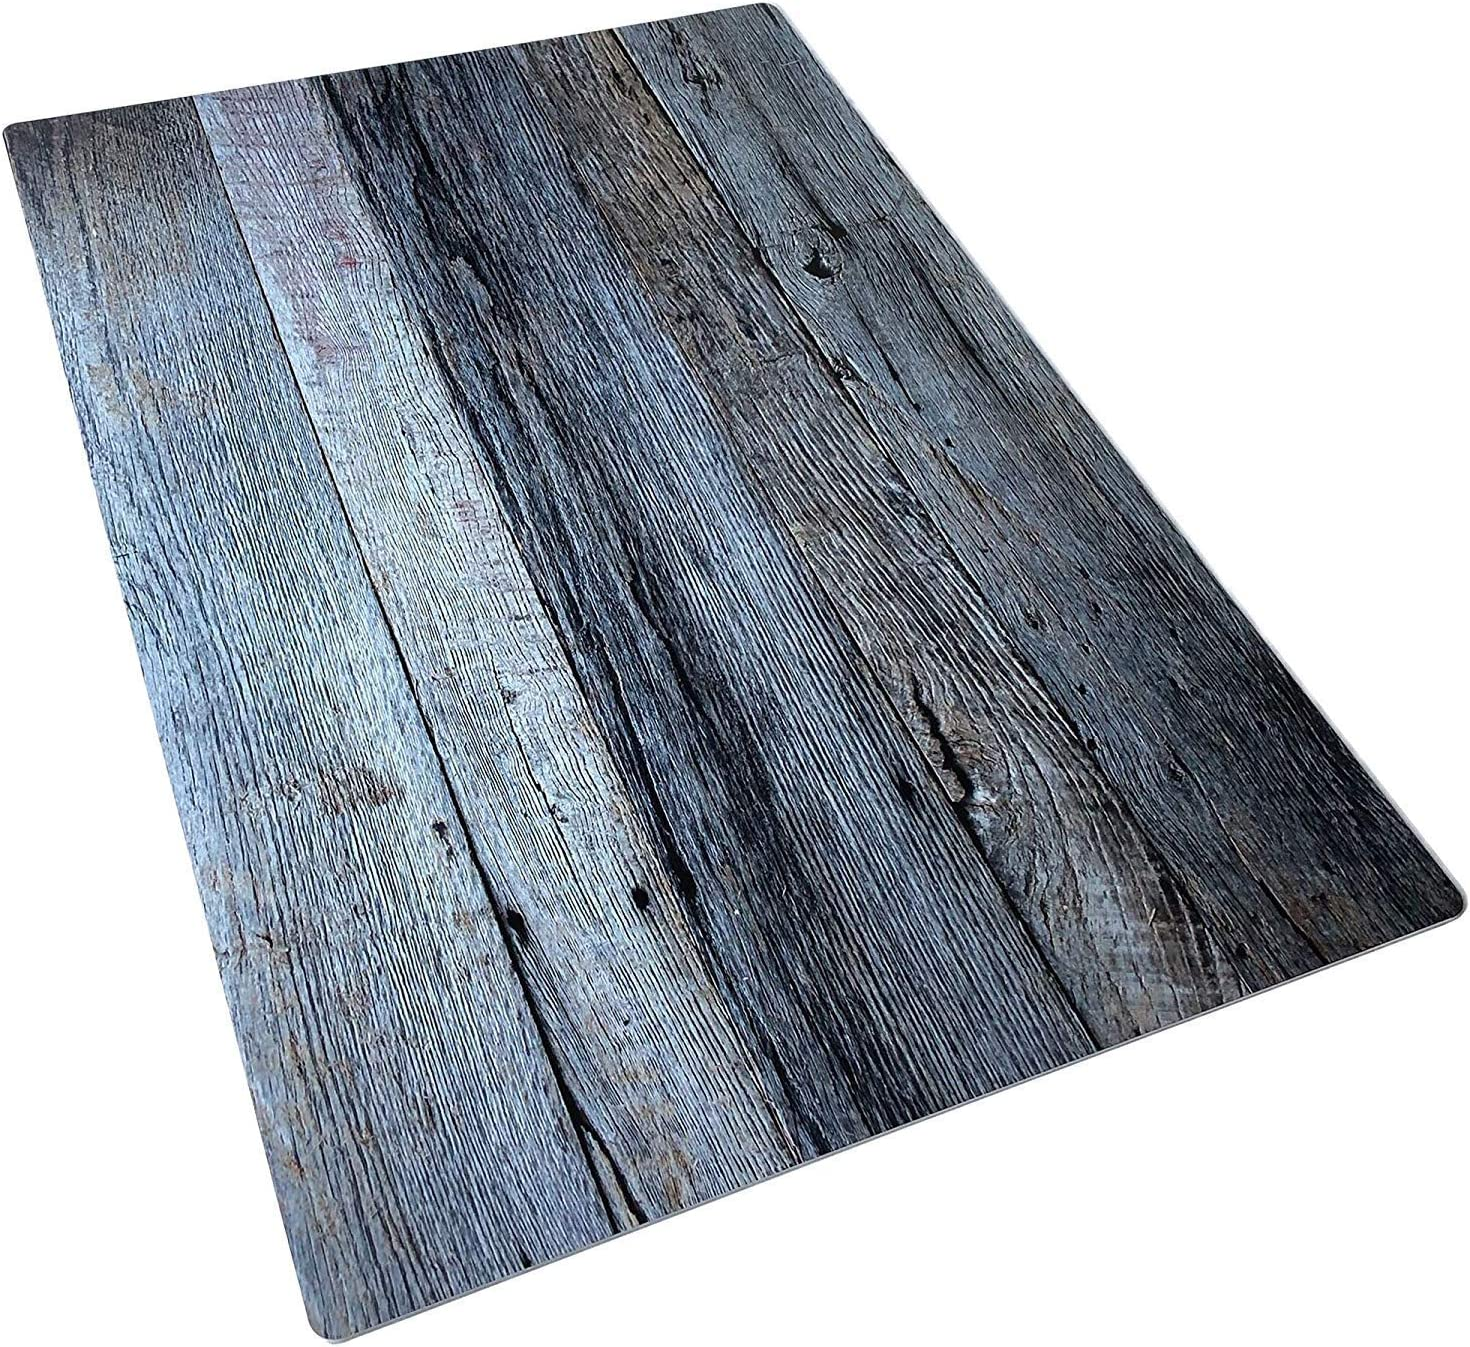 Bessie Bakes White & Silver Gray Blue Reclaimed Wood Replicated Board for Food & Product Photography 2 ft x 3ft | 3 mm Thick Moisture Resistant Stain Resistant Lightweight